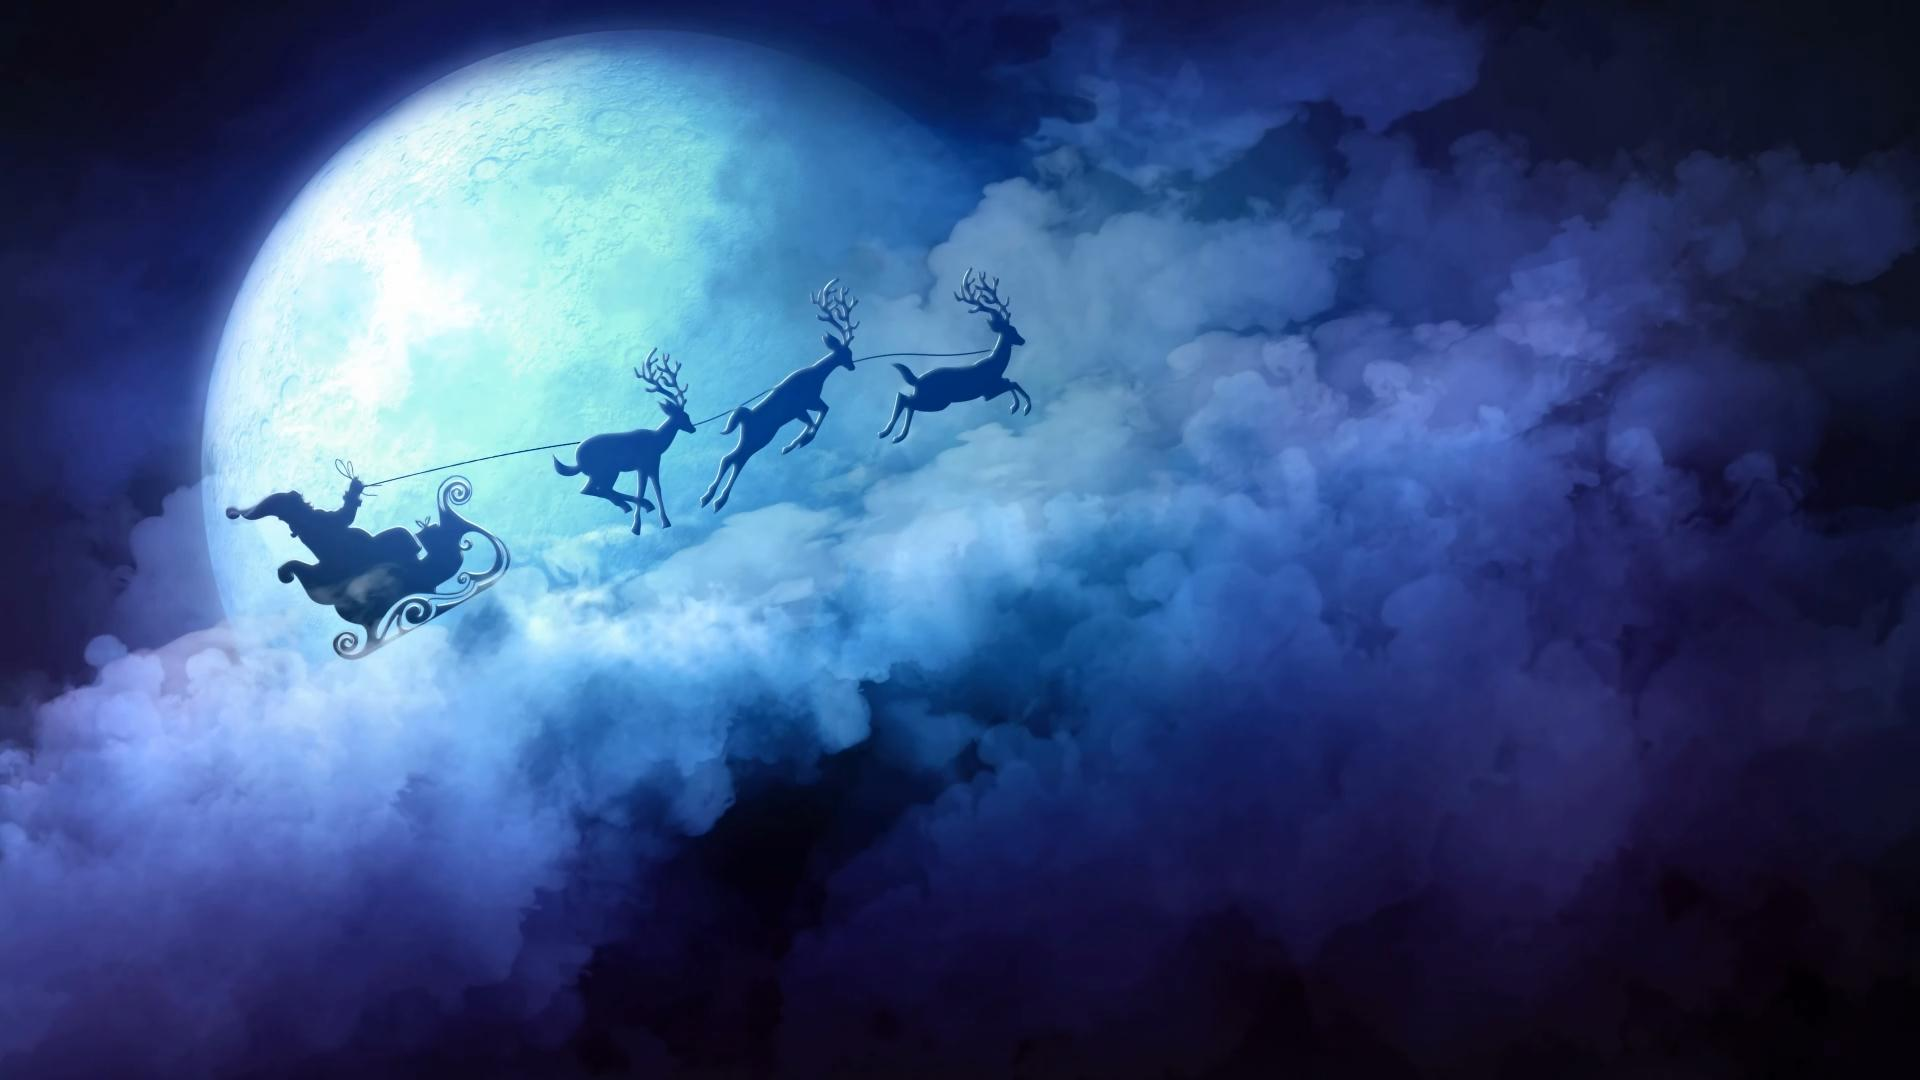 wallpaper christmas wallpapers - photo #12